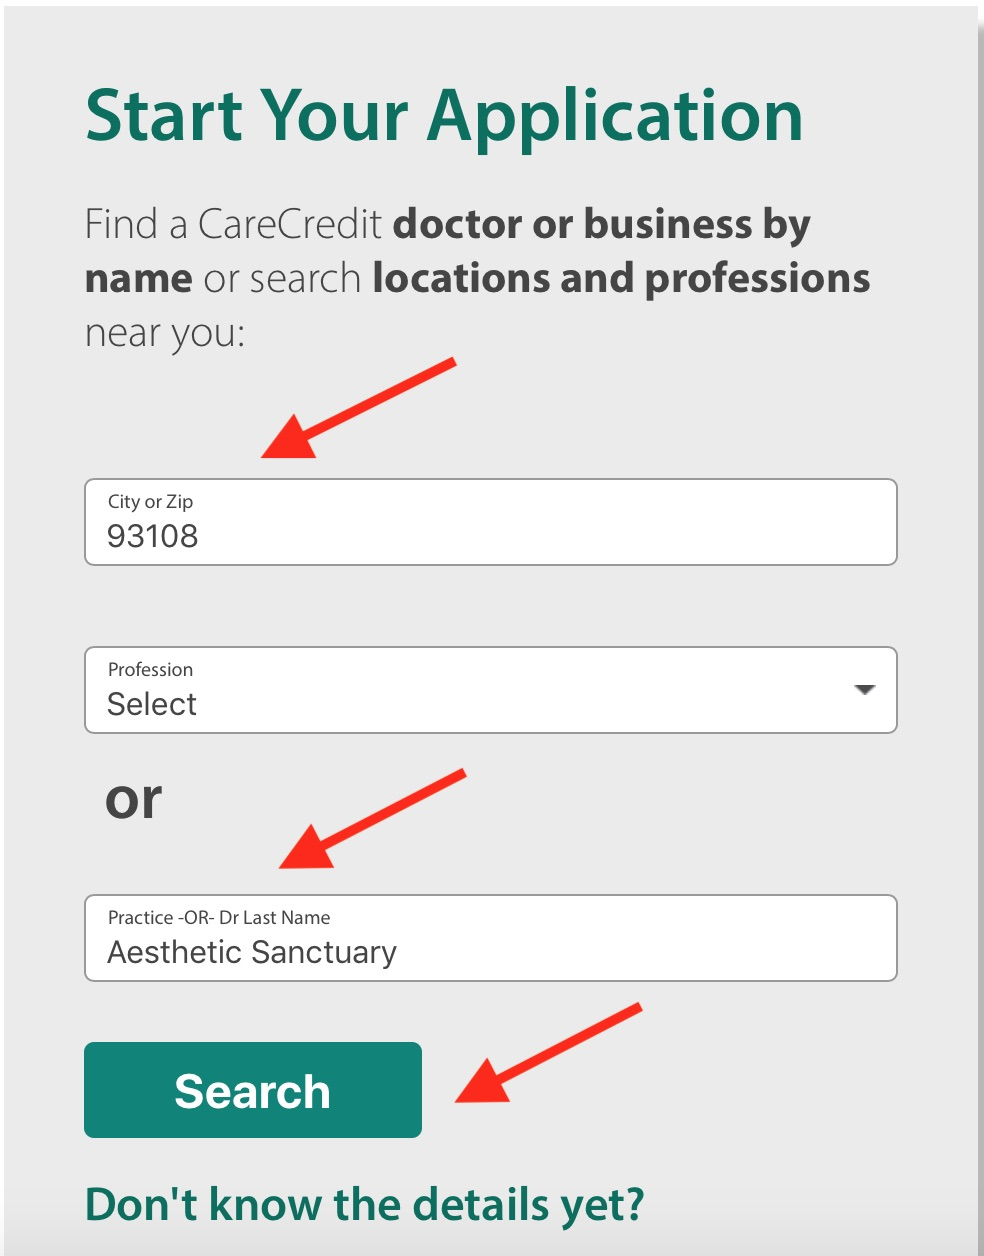 """When you get to carecredit.com, enter """"93108"""" as Zip and type """"Aesthetic Sanctuary"""" as Practice Name. Then click """"Search"""""""